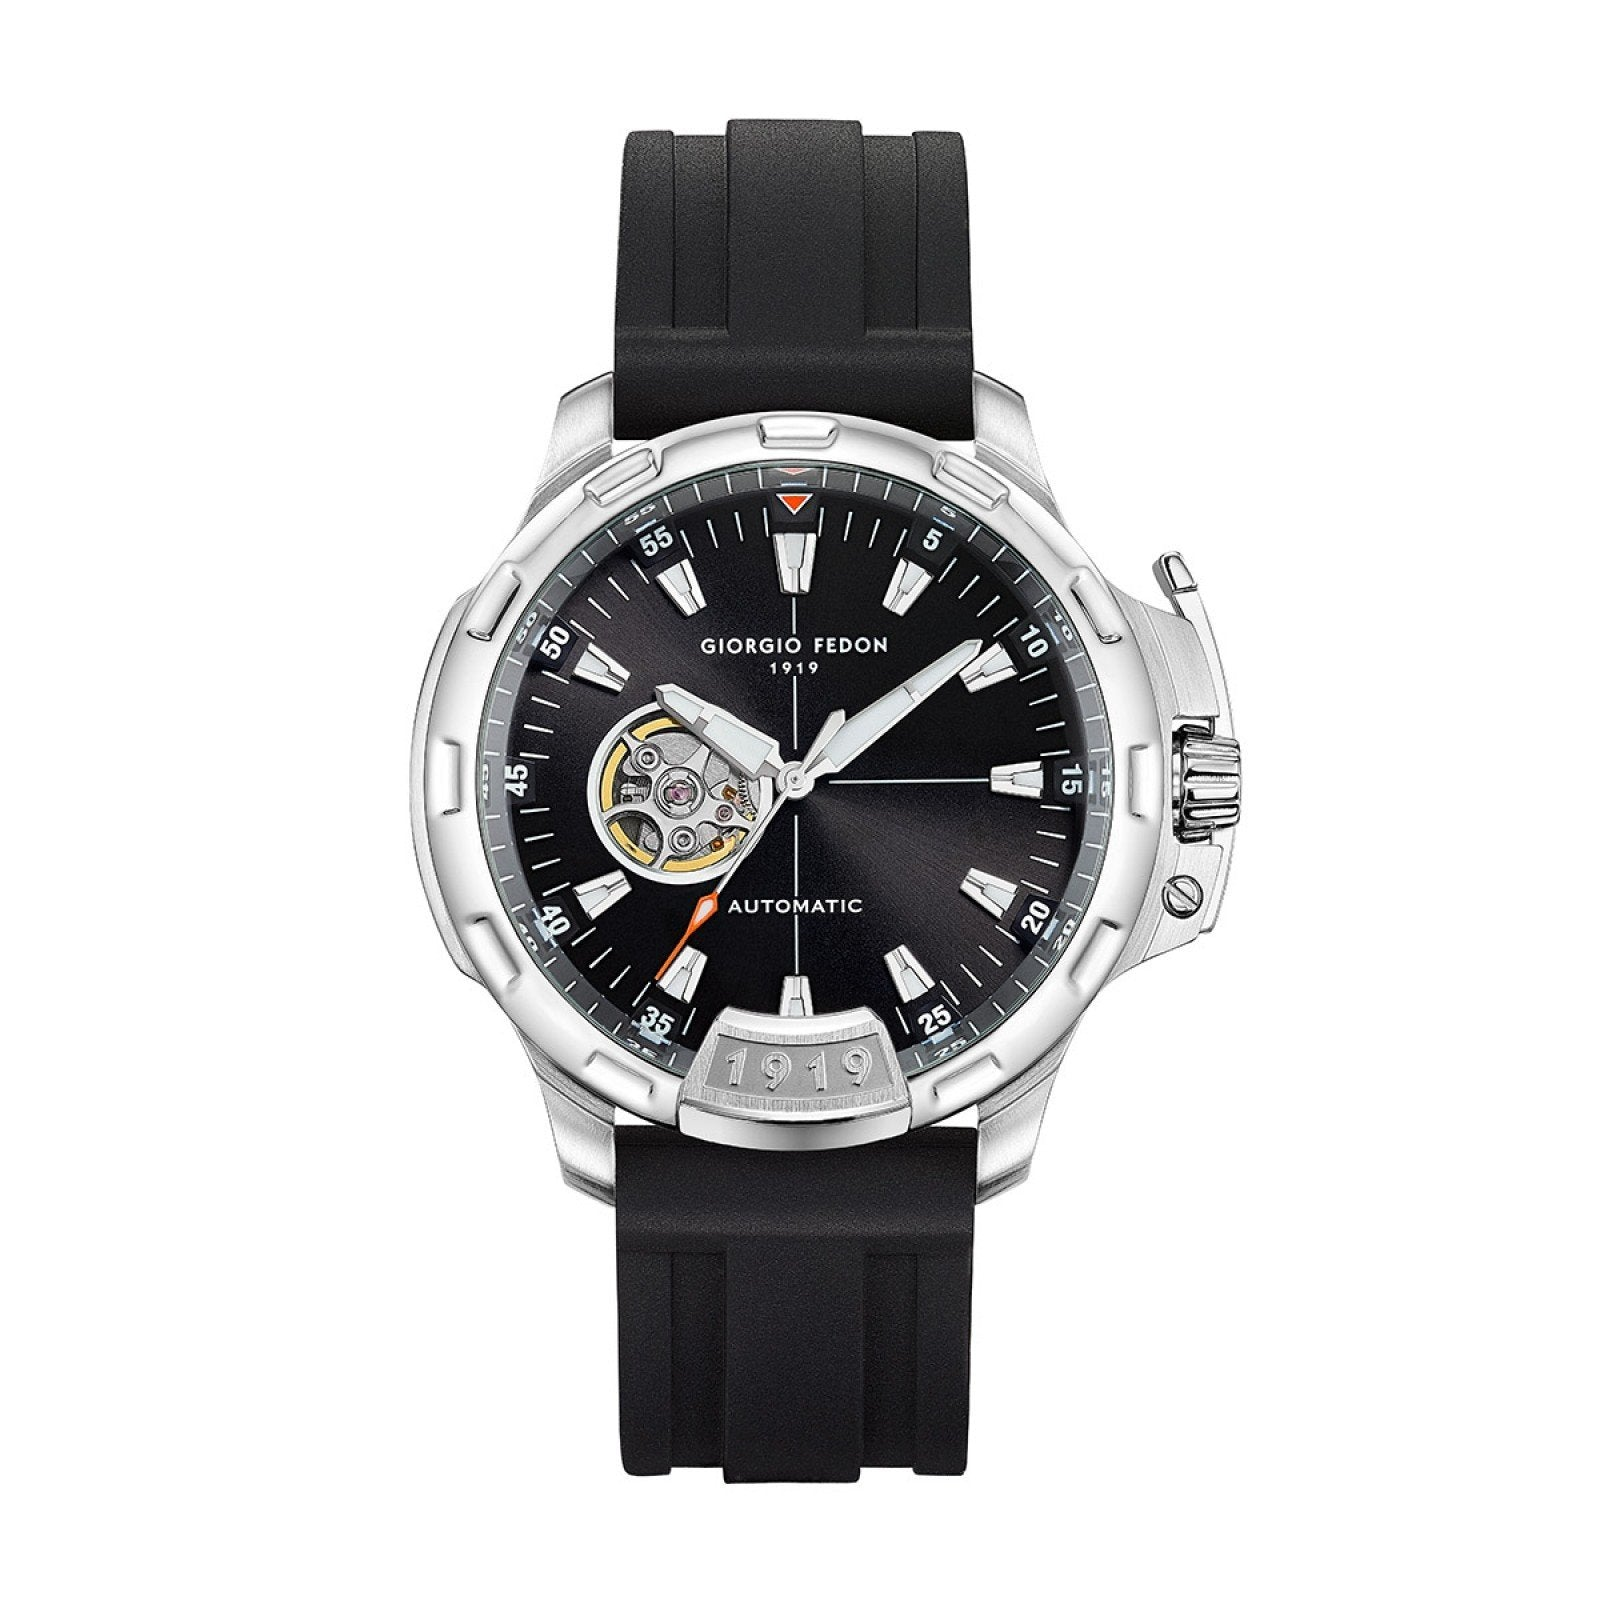 Giorgio Fedon Timeless IX Black - Watches & Crystals